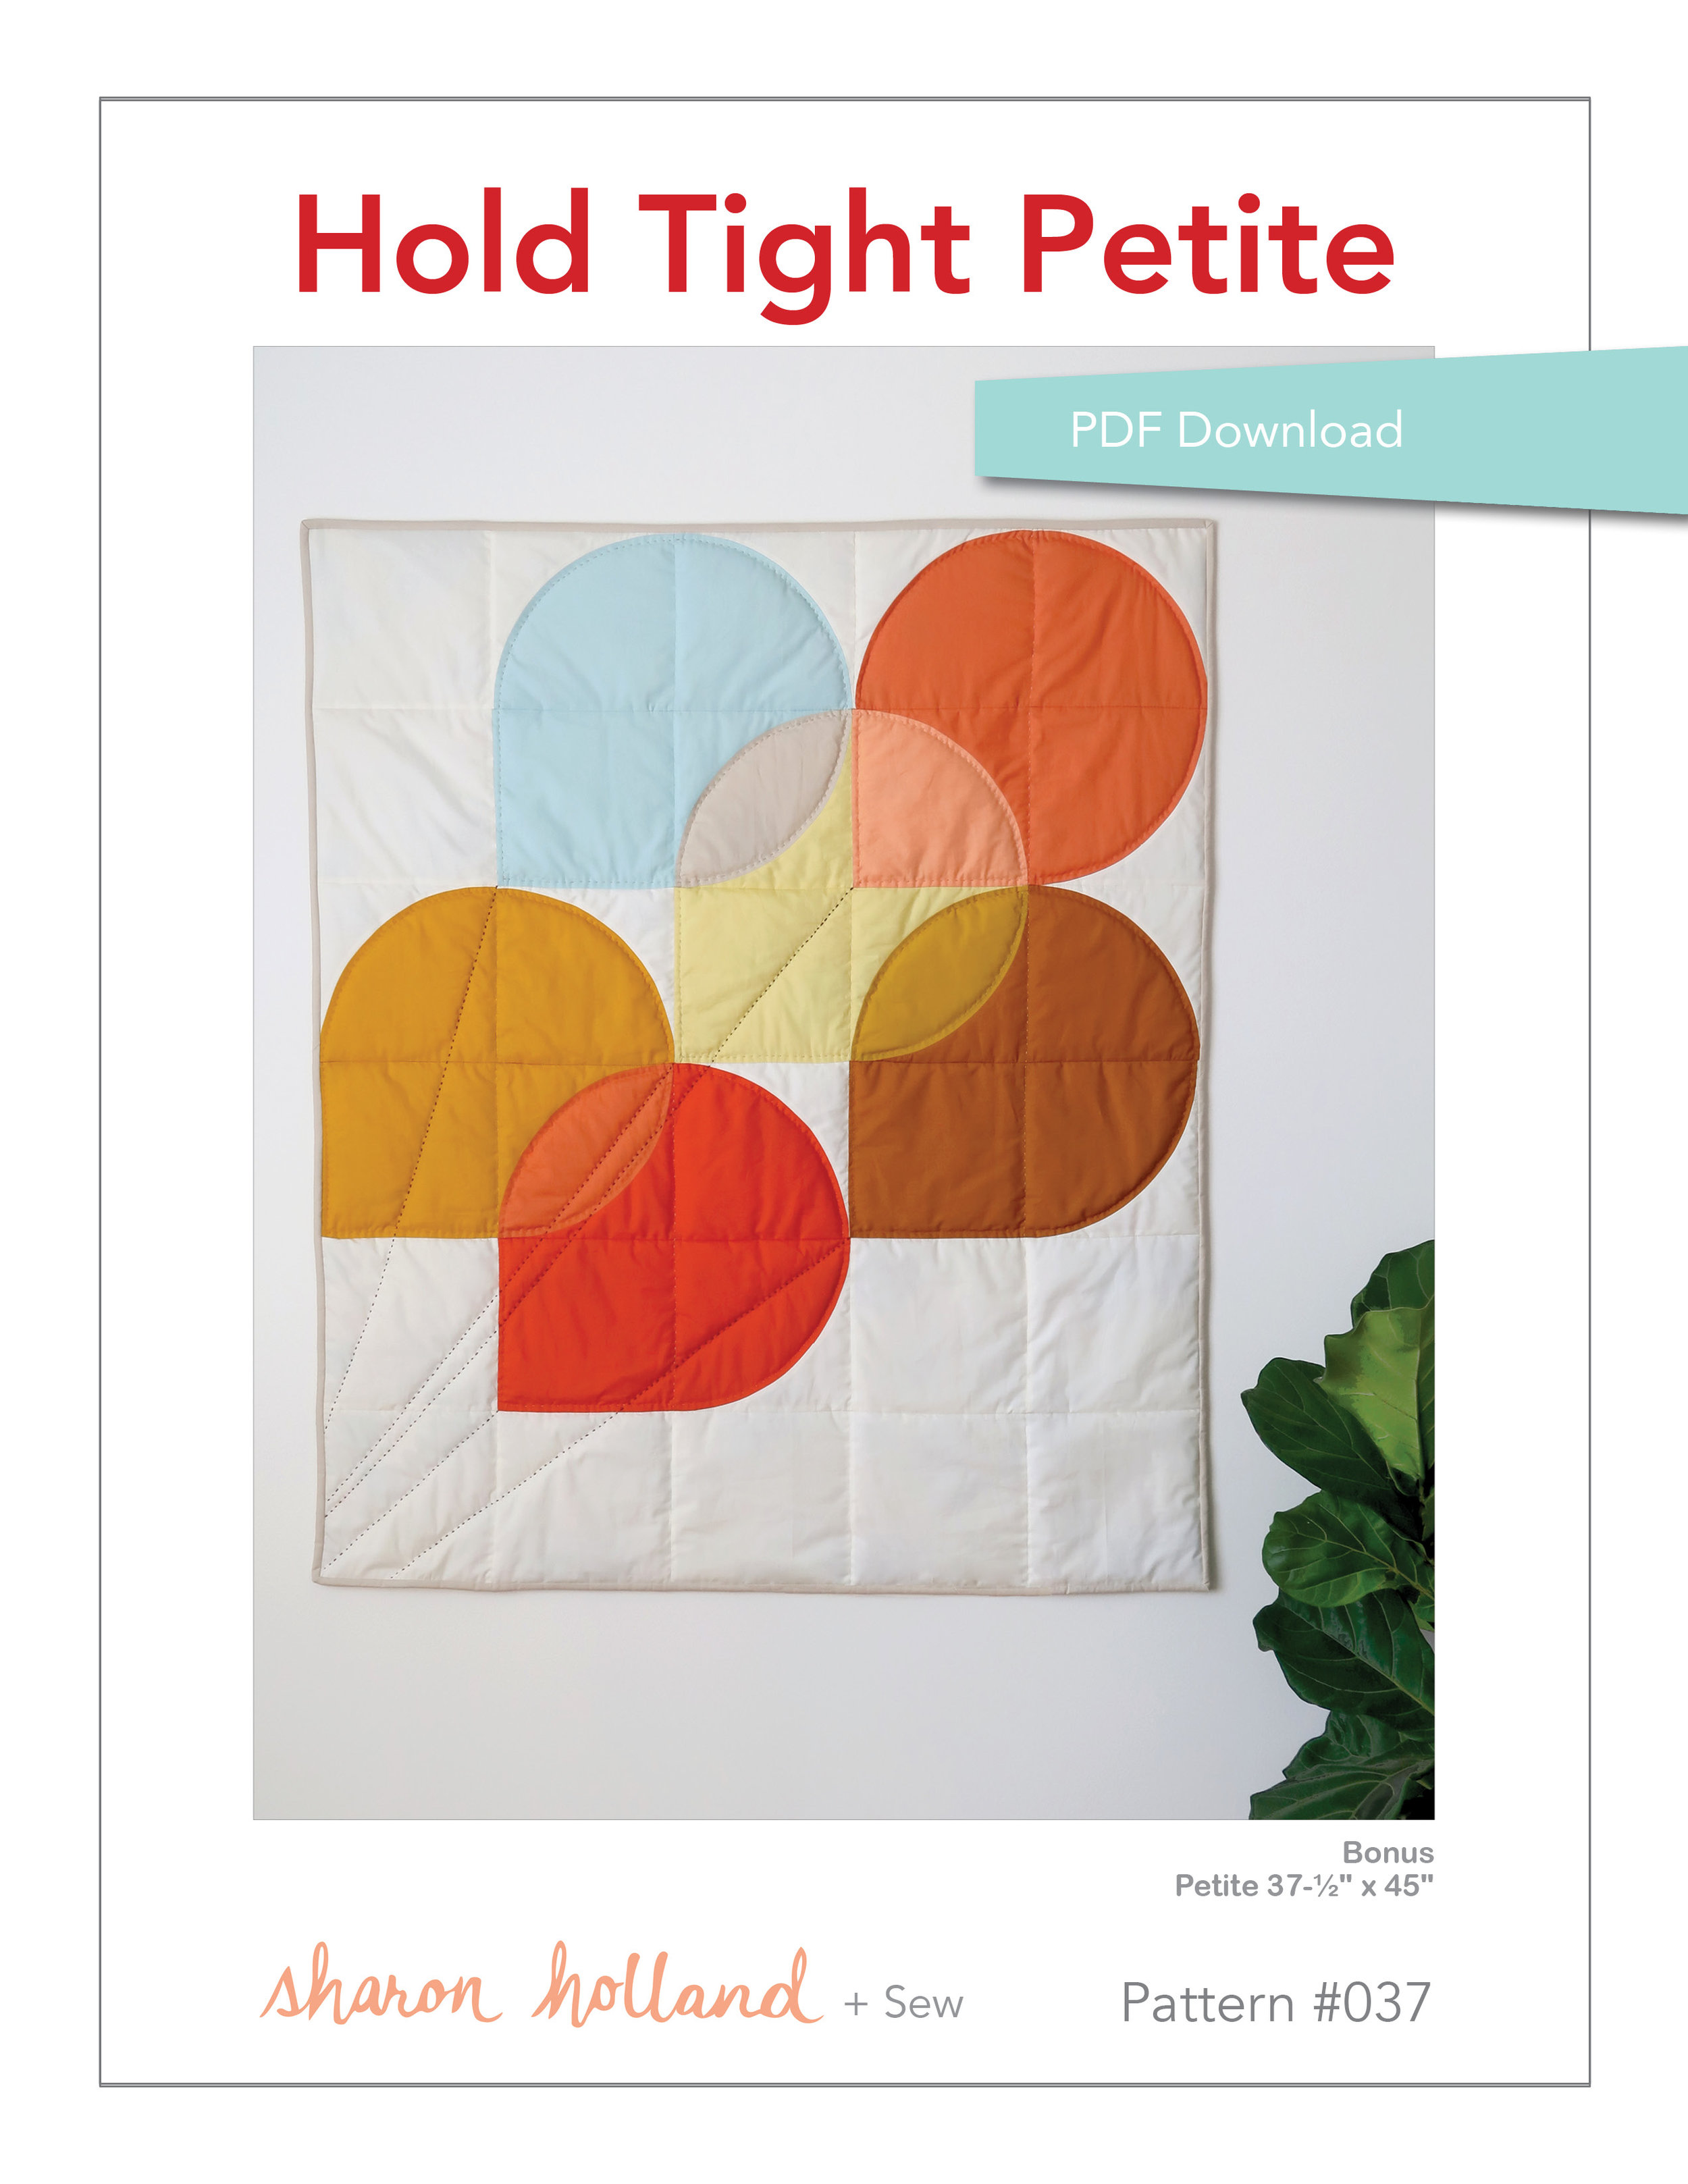 Hold Tight - Petite Bonus PDF